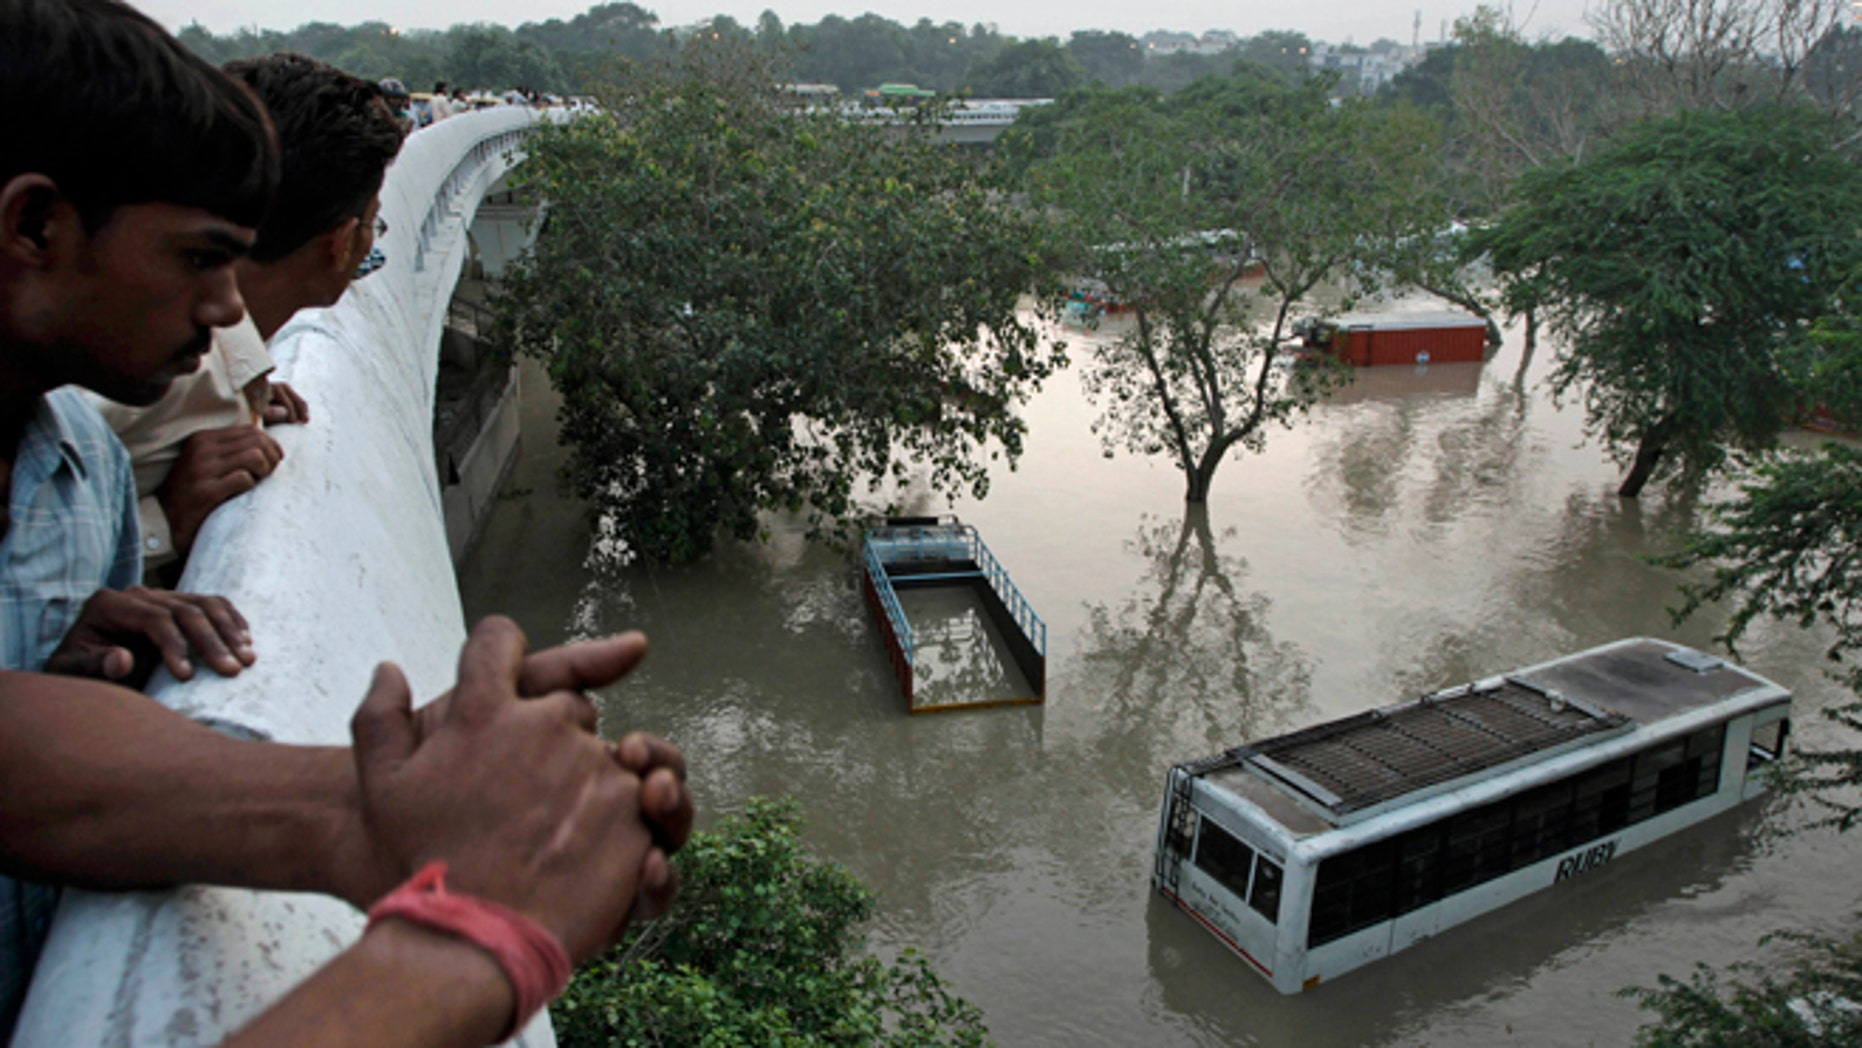 June 19, 2013: People gather to look at submerged buses and trucks in the rising Yamuna River as they stand on a flyover in New Delhi, India. Indias prime minister said Wednesday that the death toll from flooding this week in the northern state of Uttrakhand had surpassed 100 and could rise substantially.